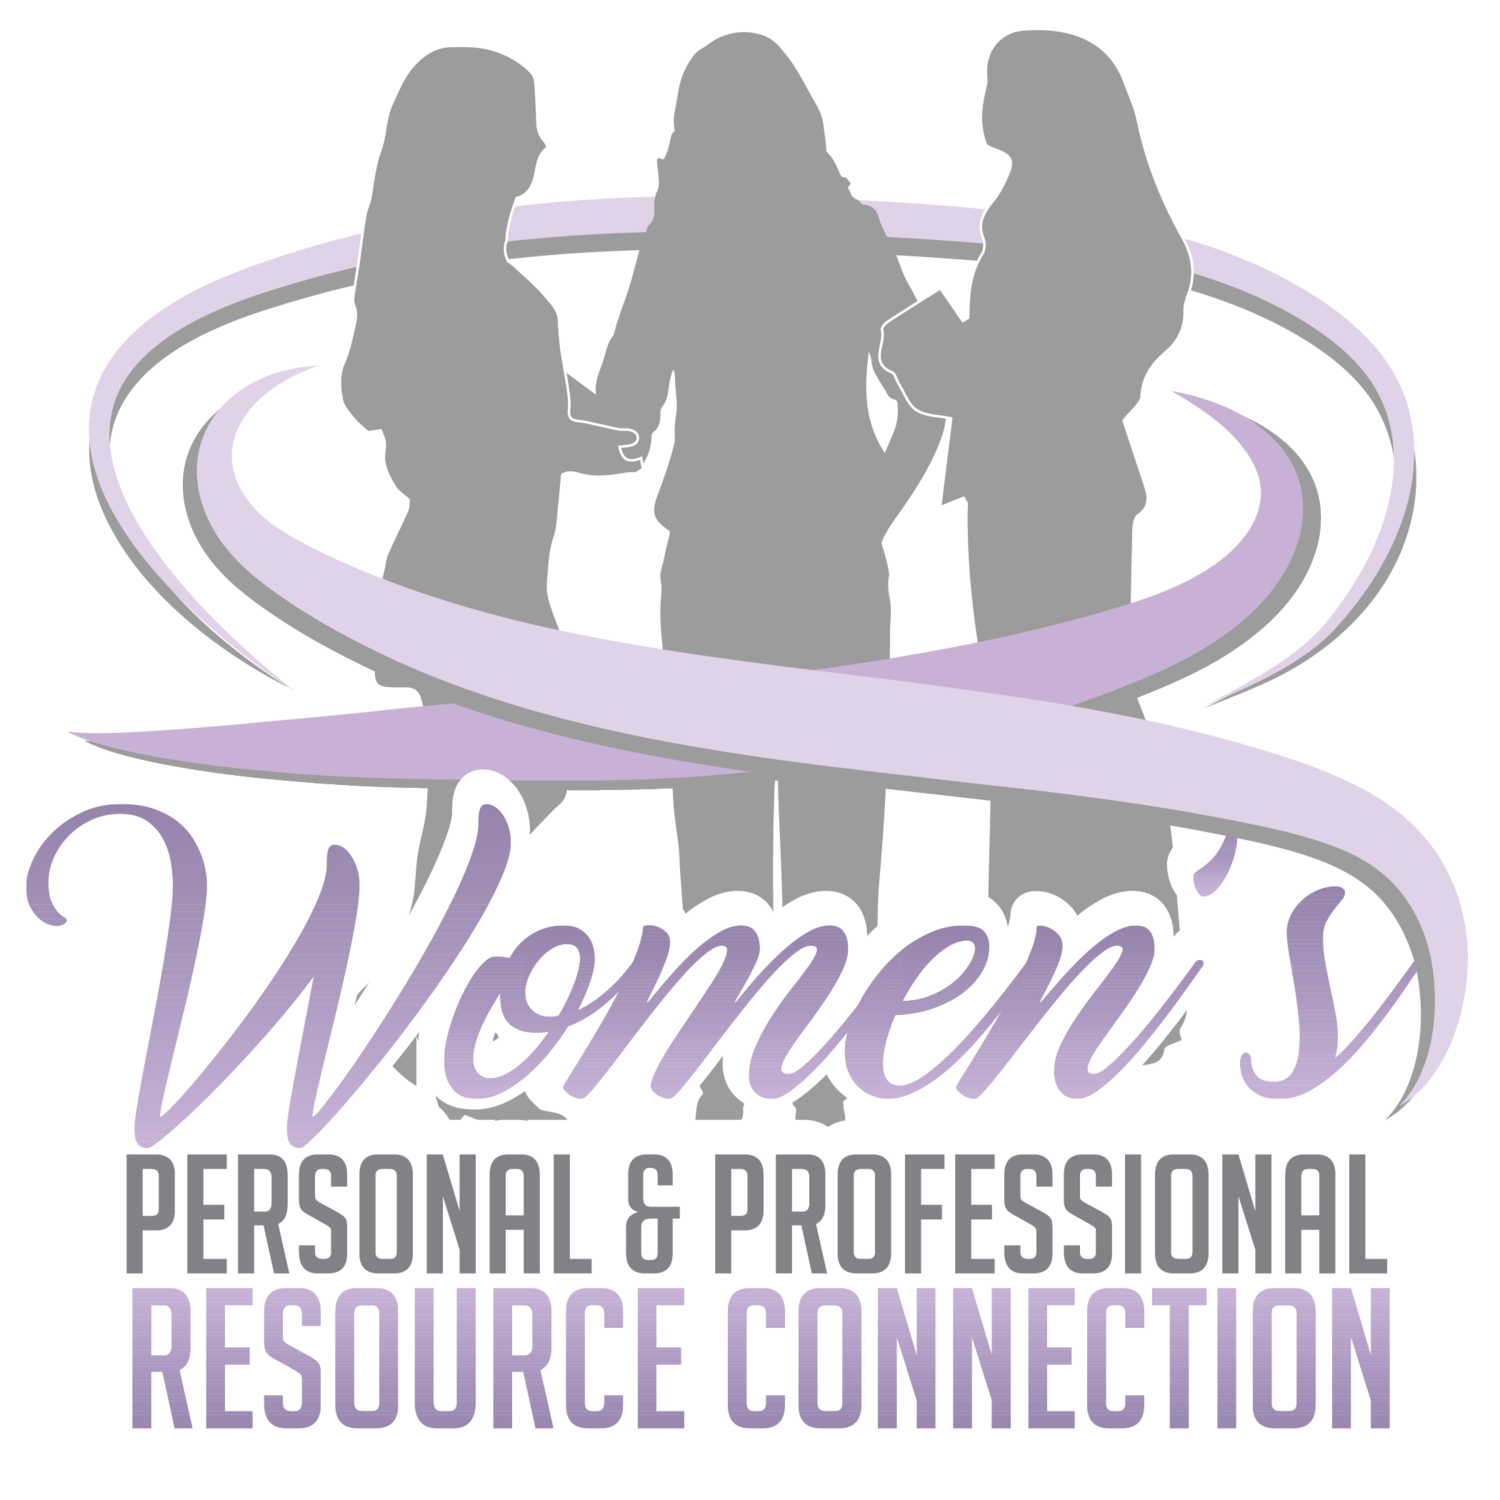 Women's Personal & Professional Resource Connection